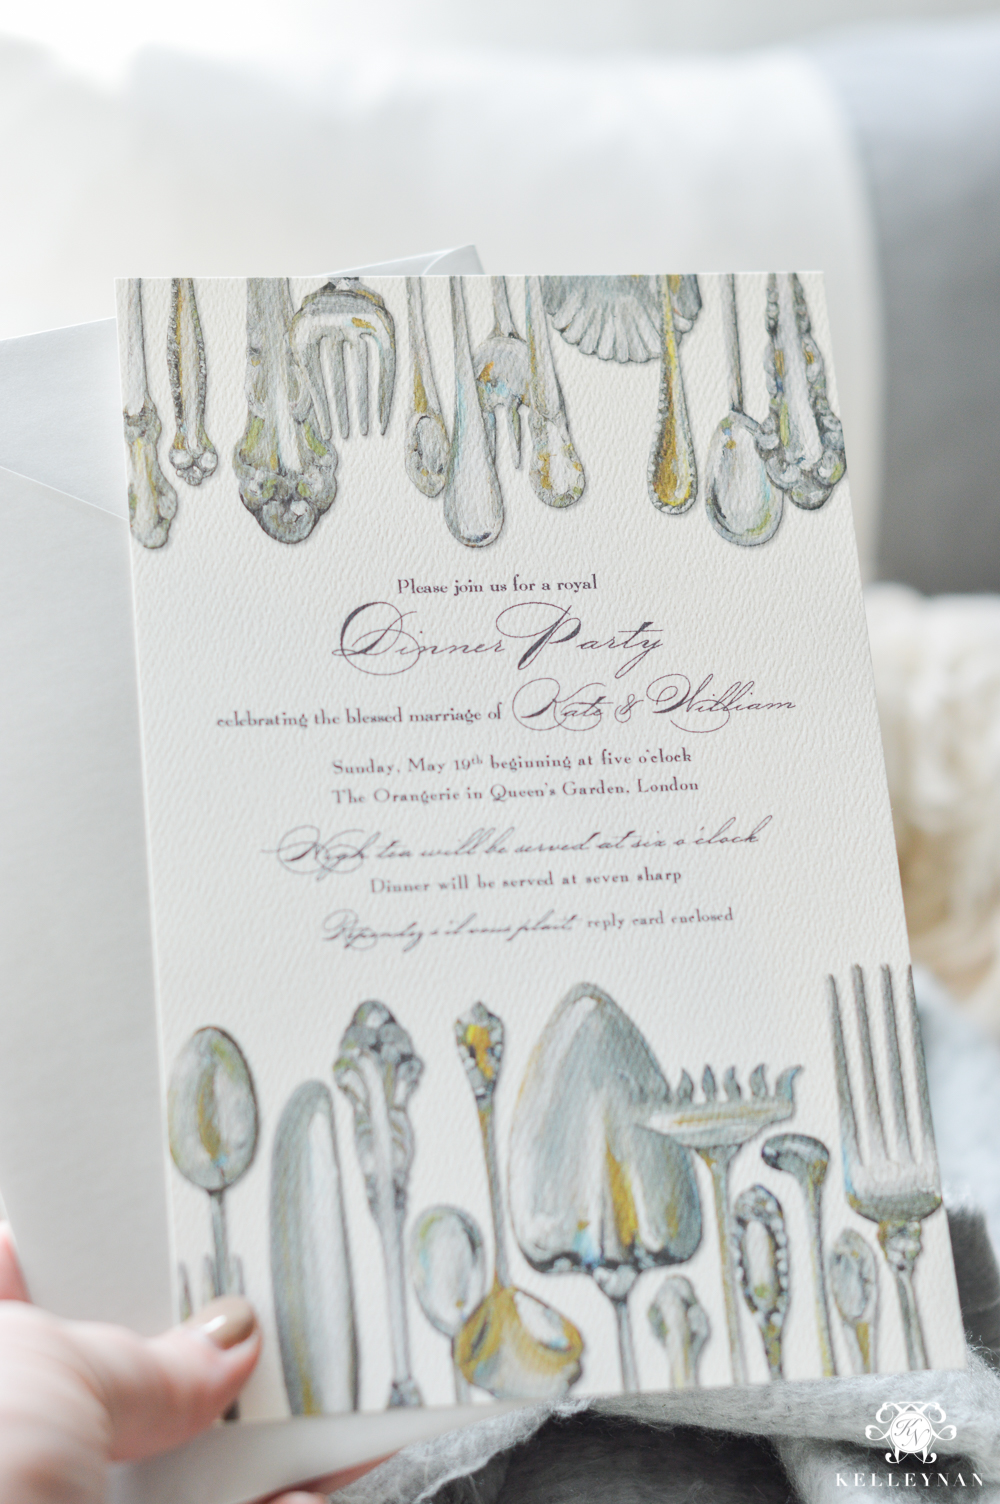 Gorgeous dinner party invitation ideas